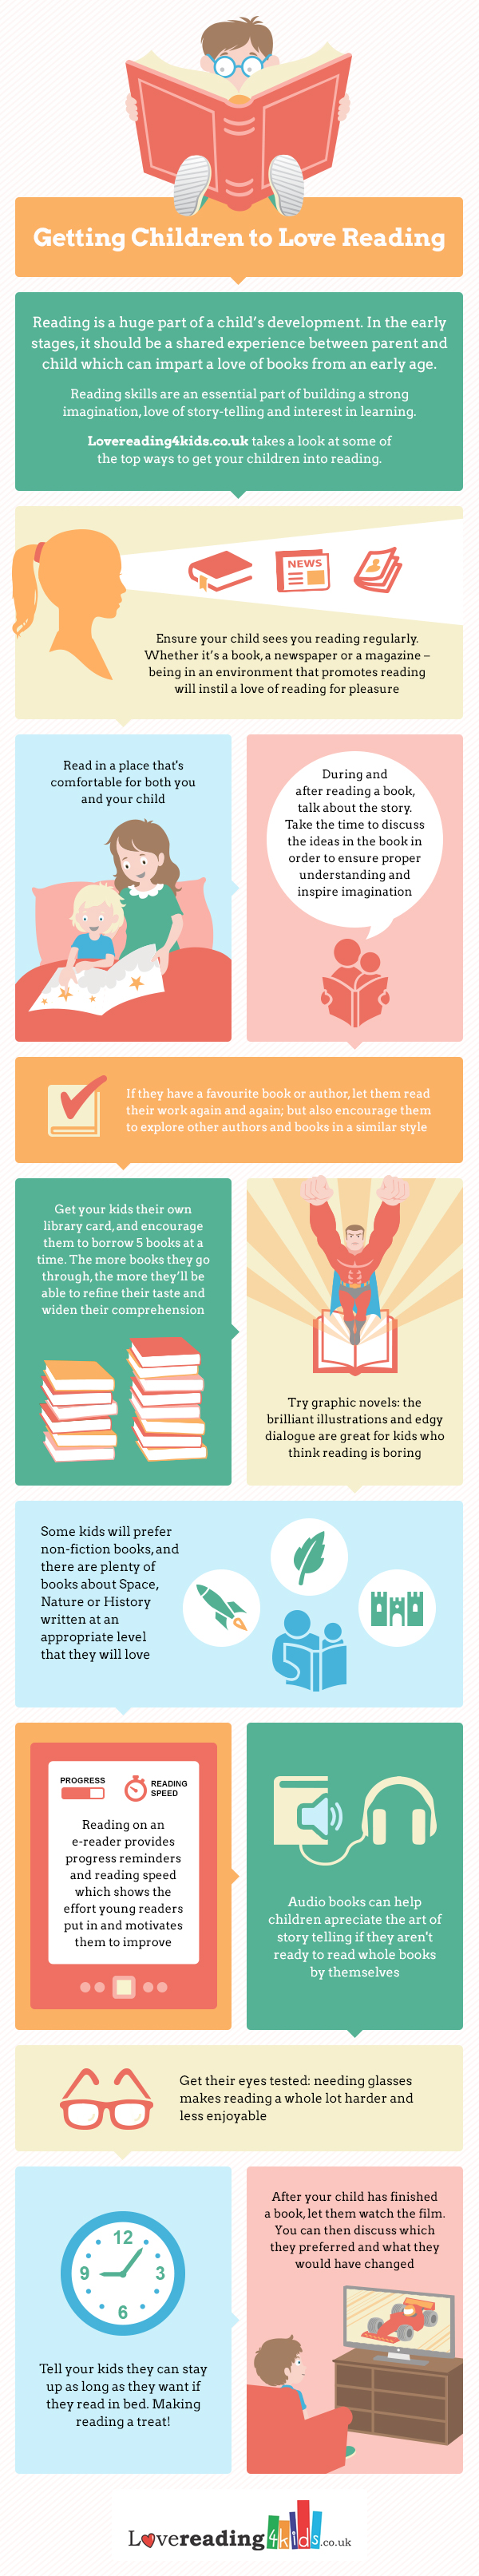 how-to-encourage-children-to-read-infogr